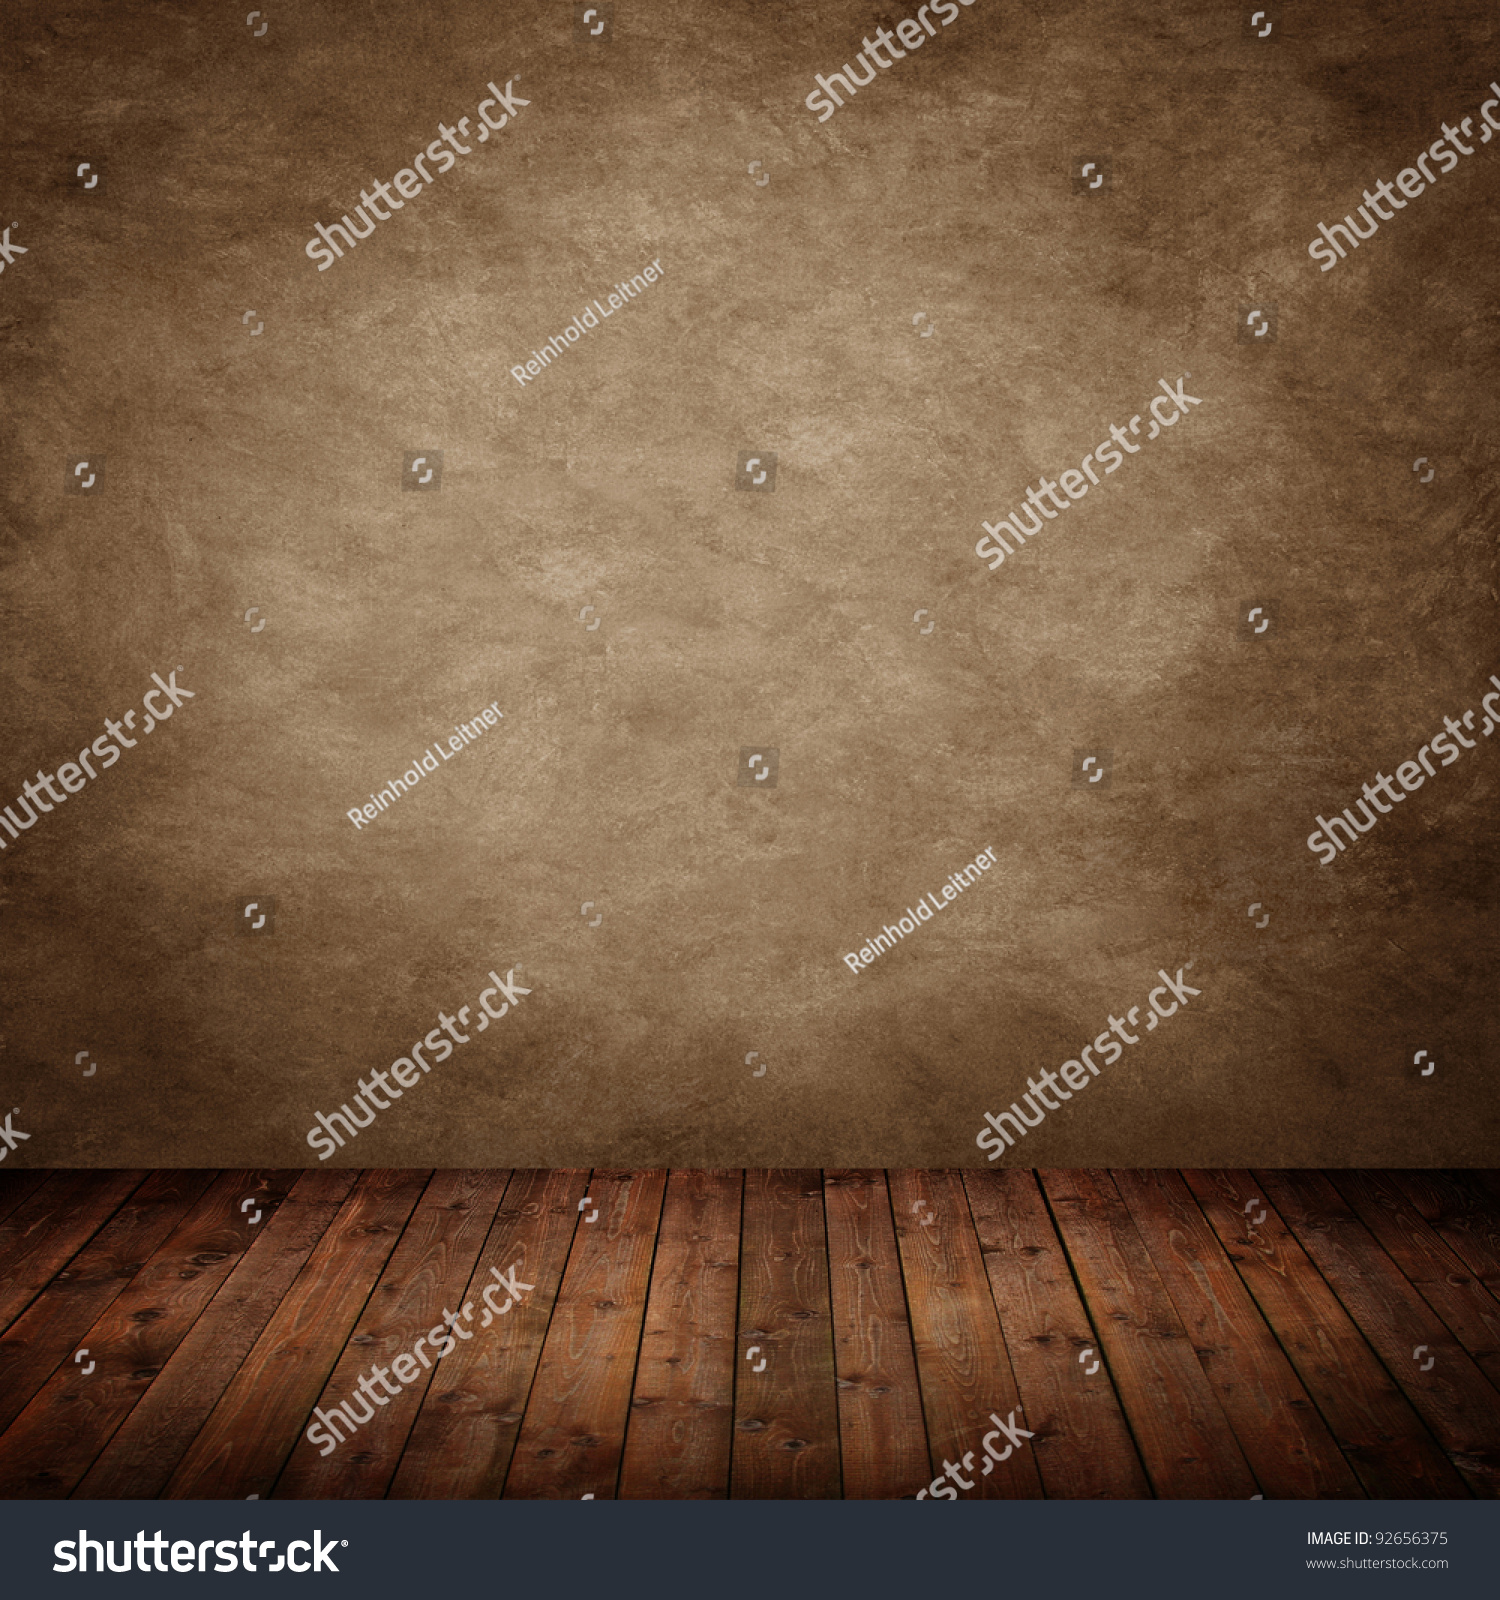 Room Interior Vintage With Brown Textured Wall Stock Photo ...